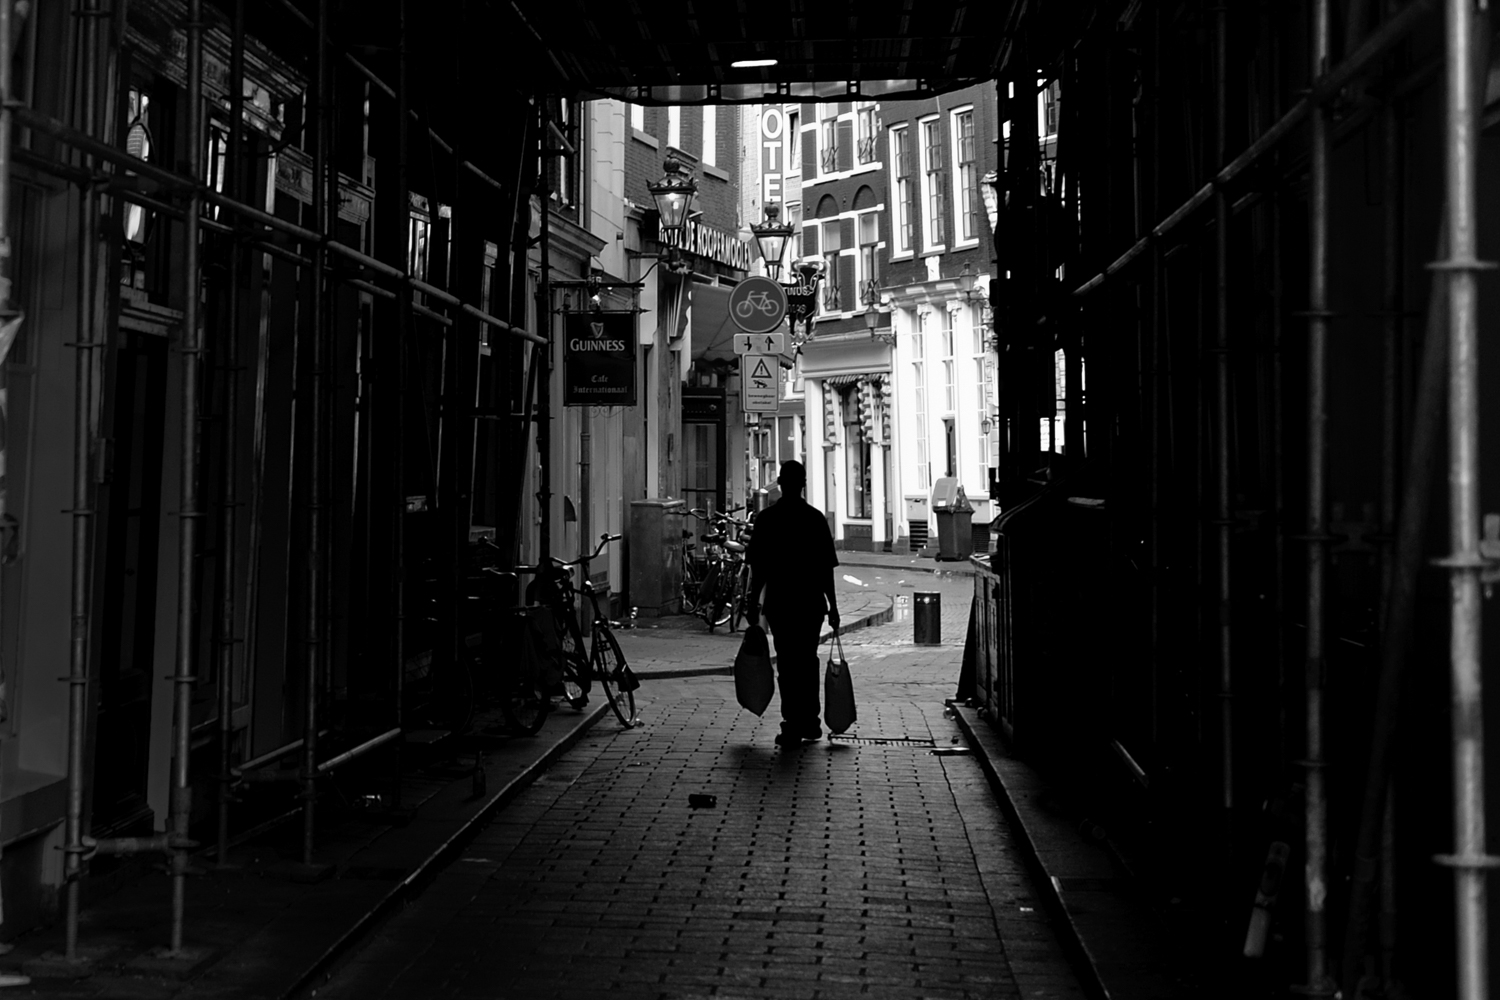 A man walking through an alley with bags